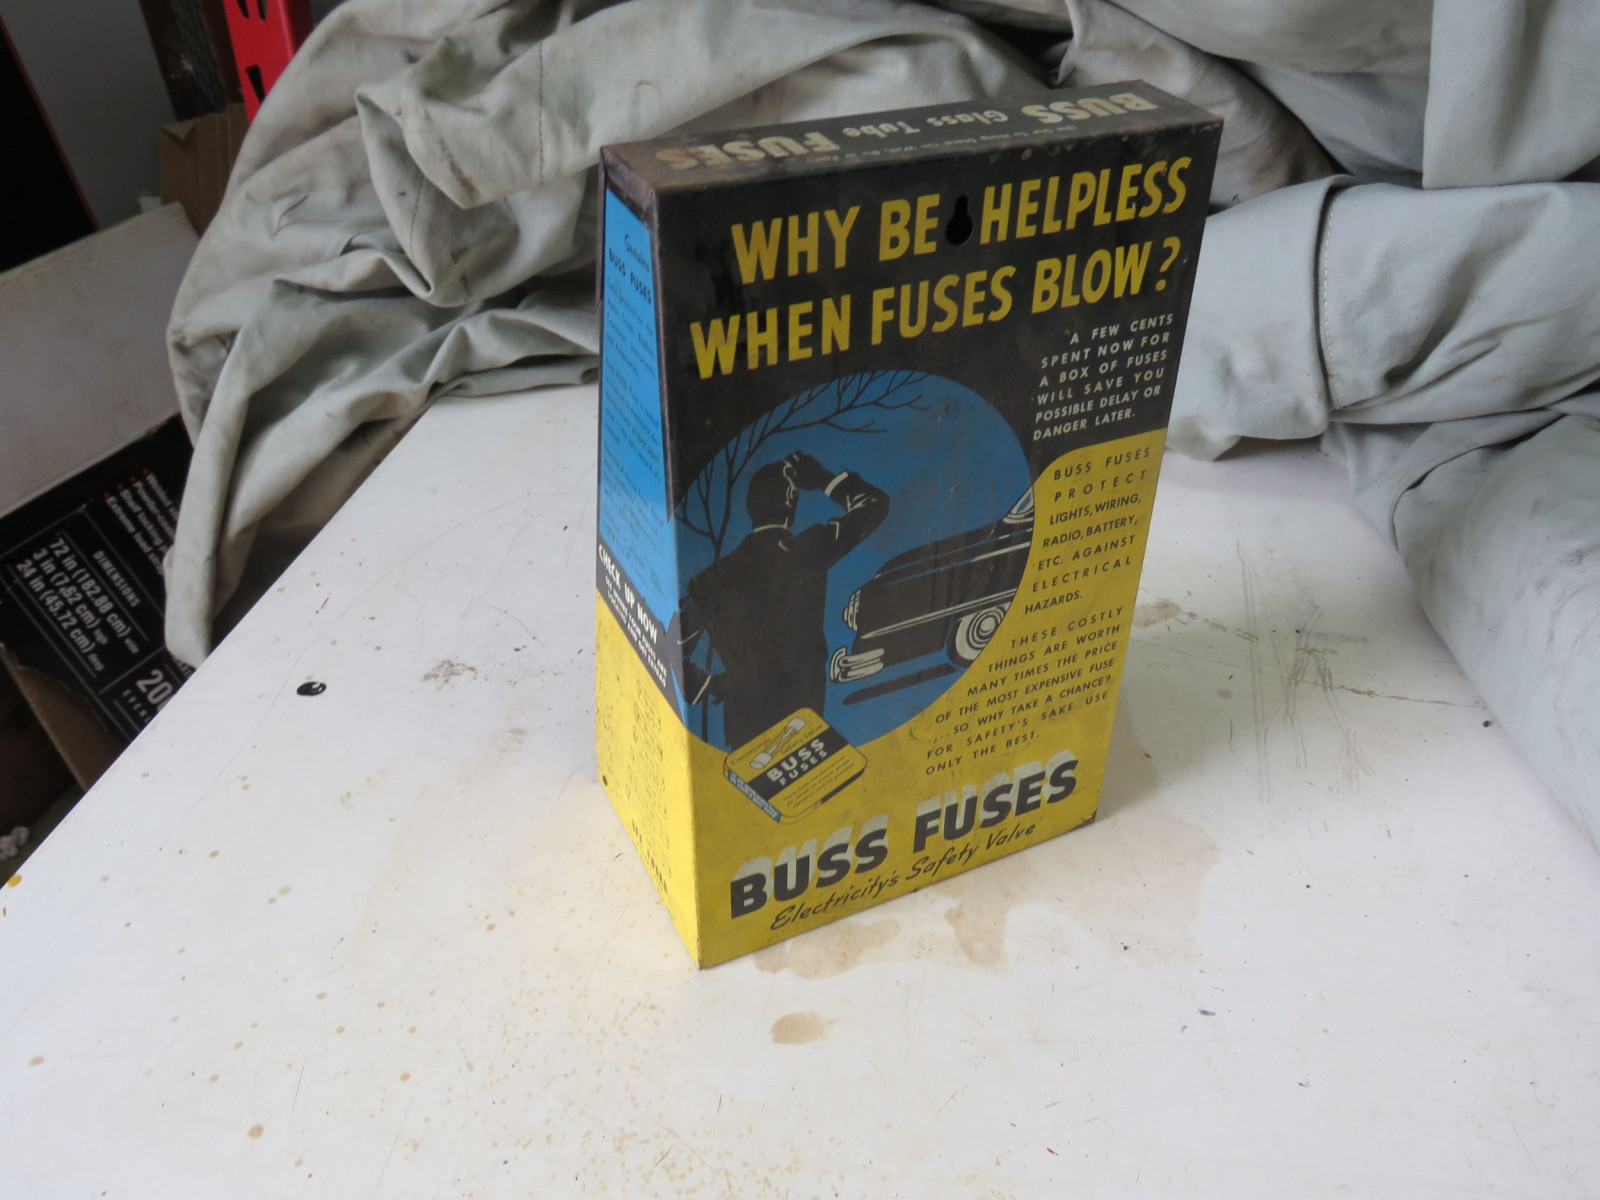 Buss Fuse display - Image 2